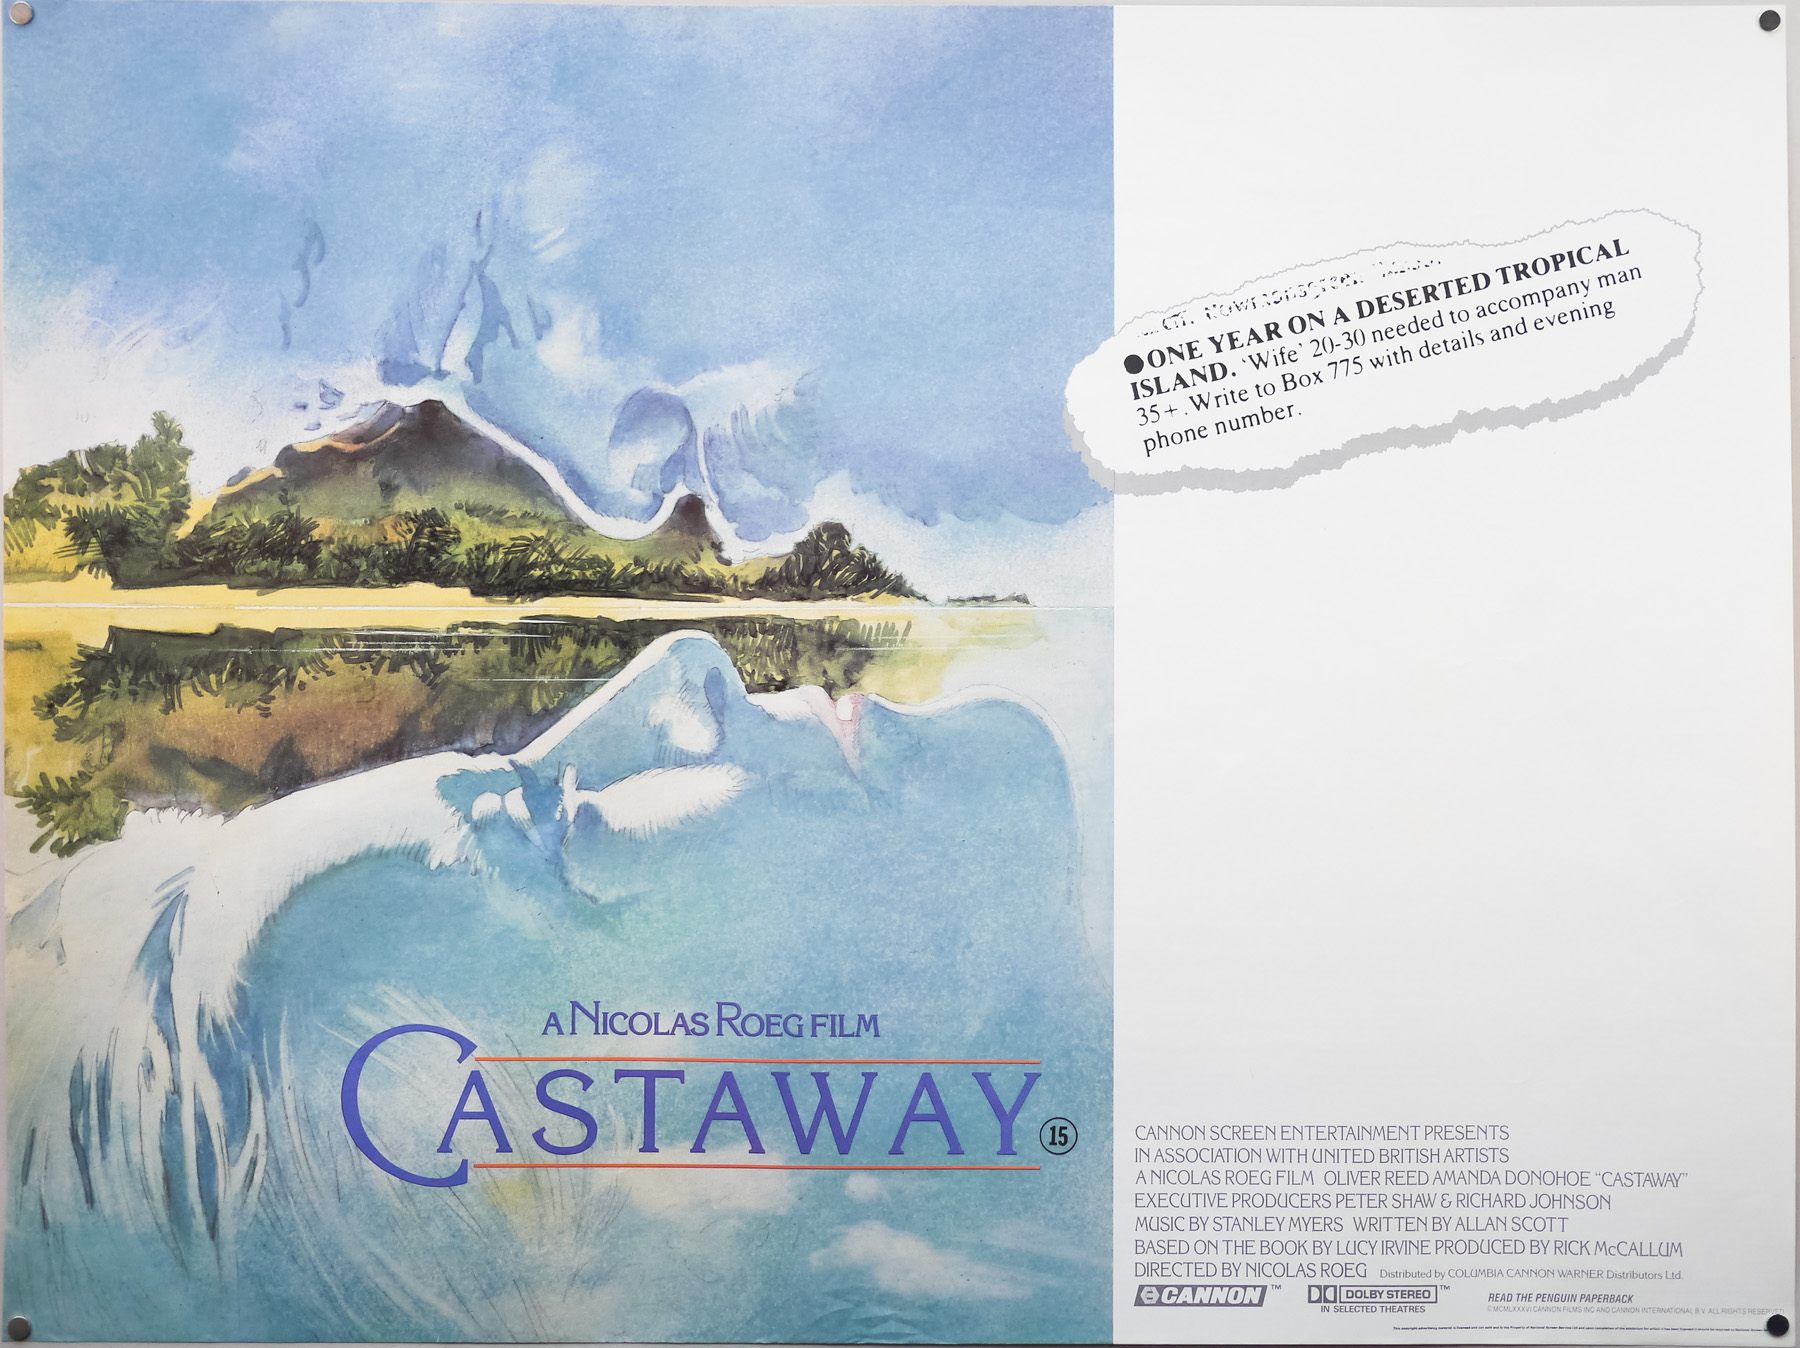 The British quad for Castaway (1986) designed by Vic Fair. His original concept illustration ended up being used after attempts to paint it again, and capture the quality of the original, failed.